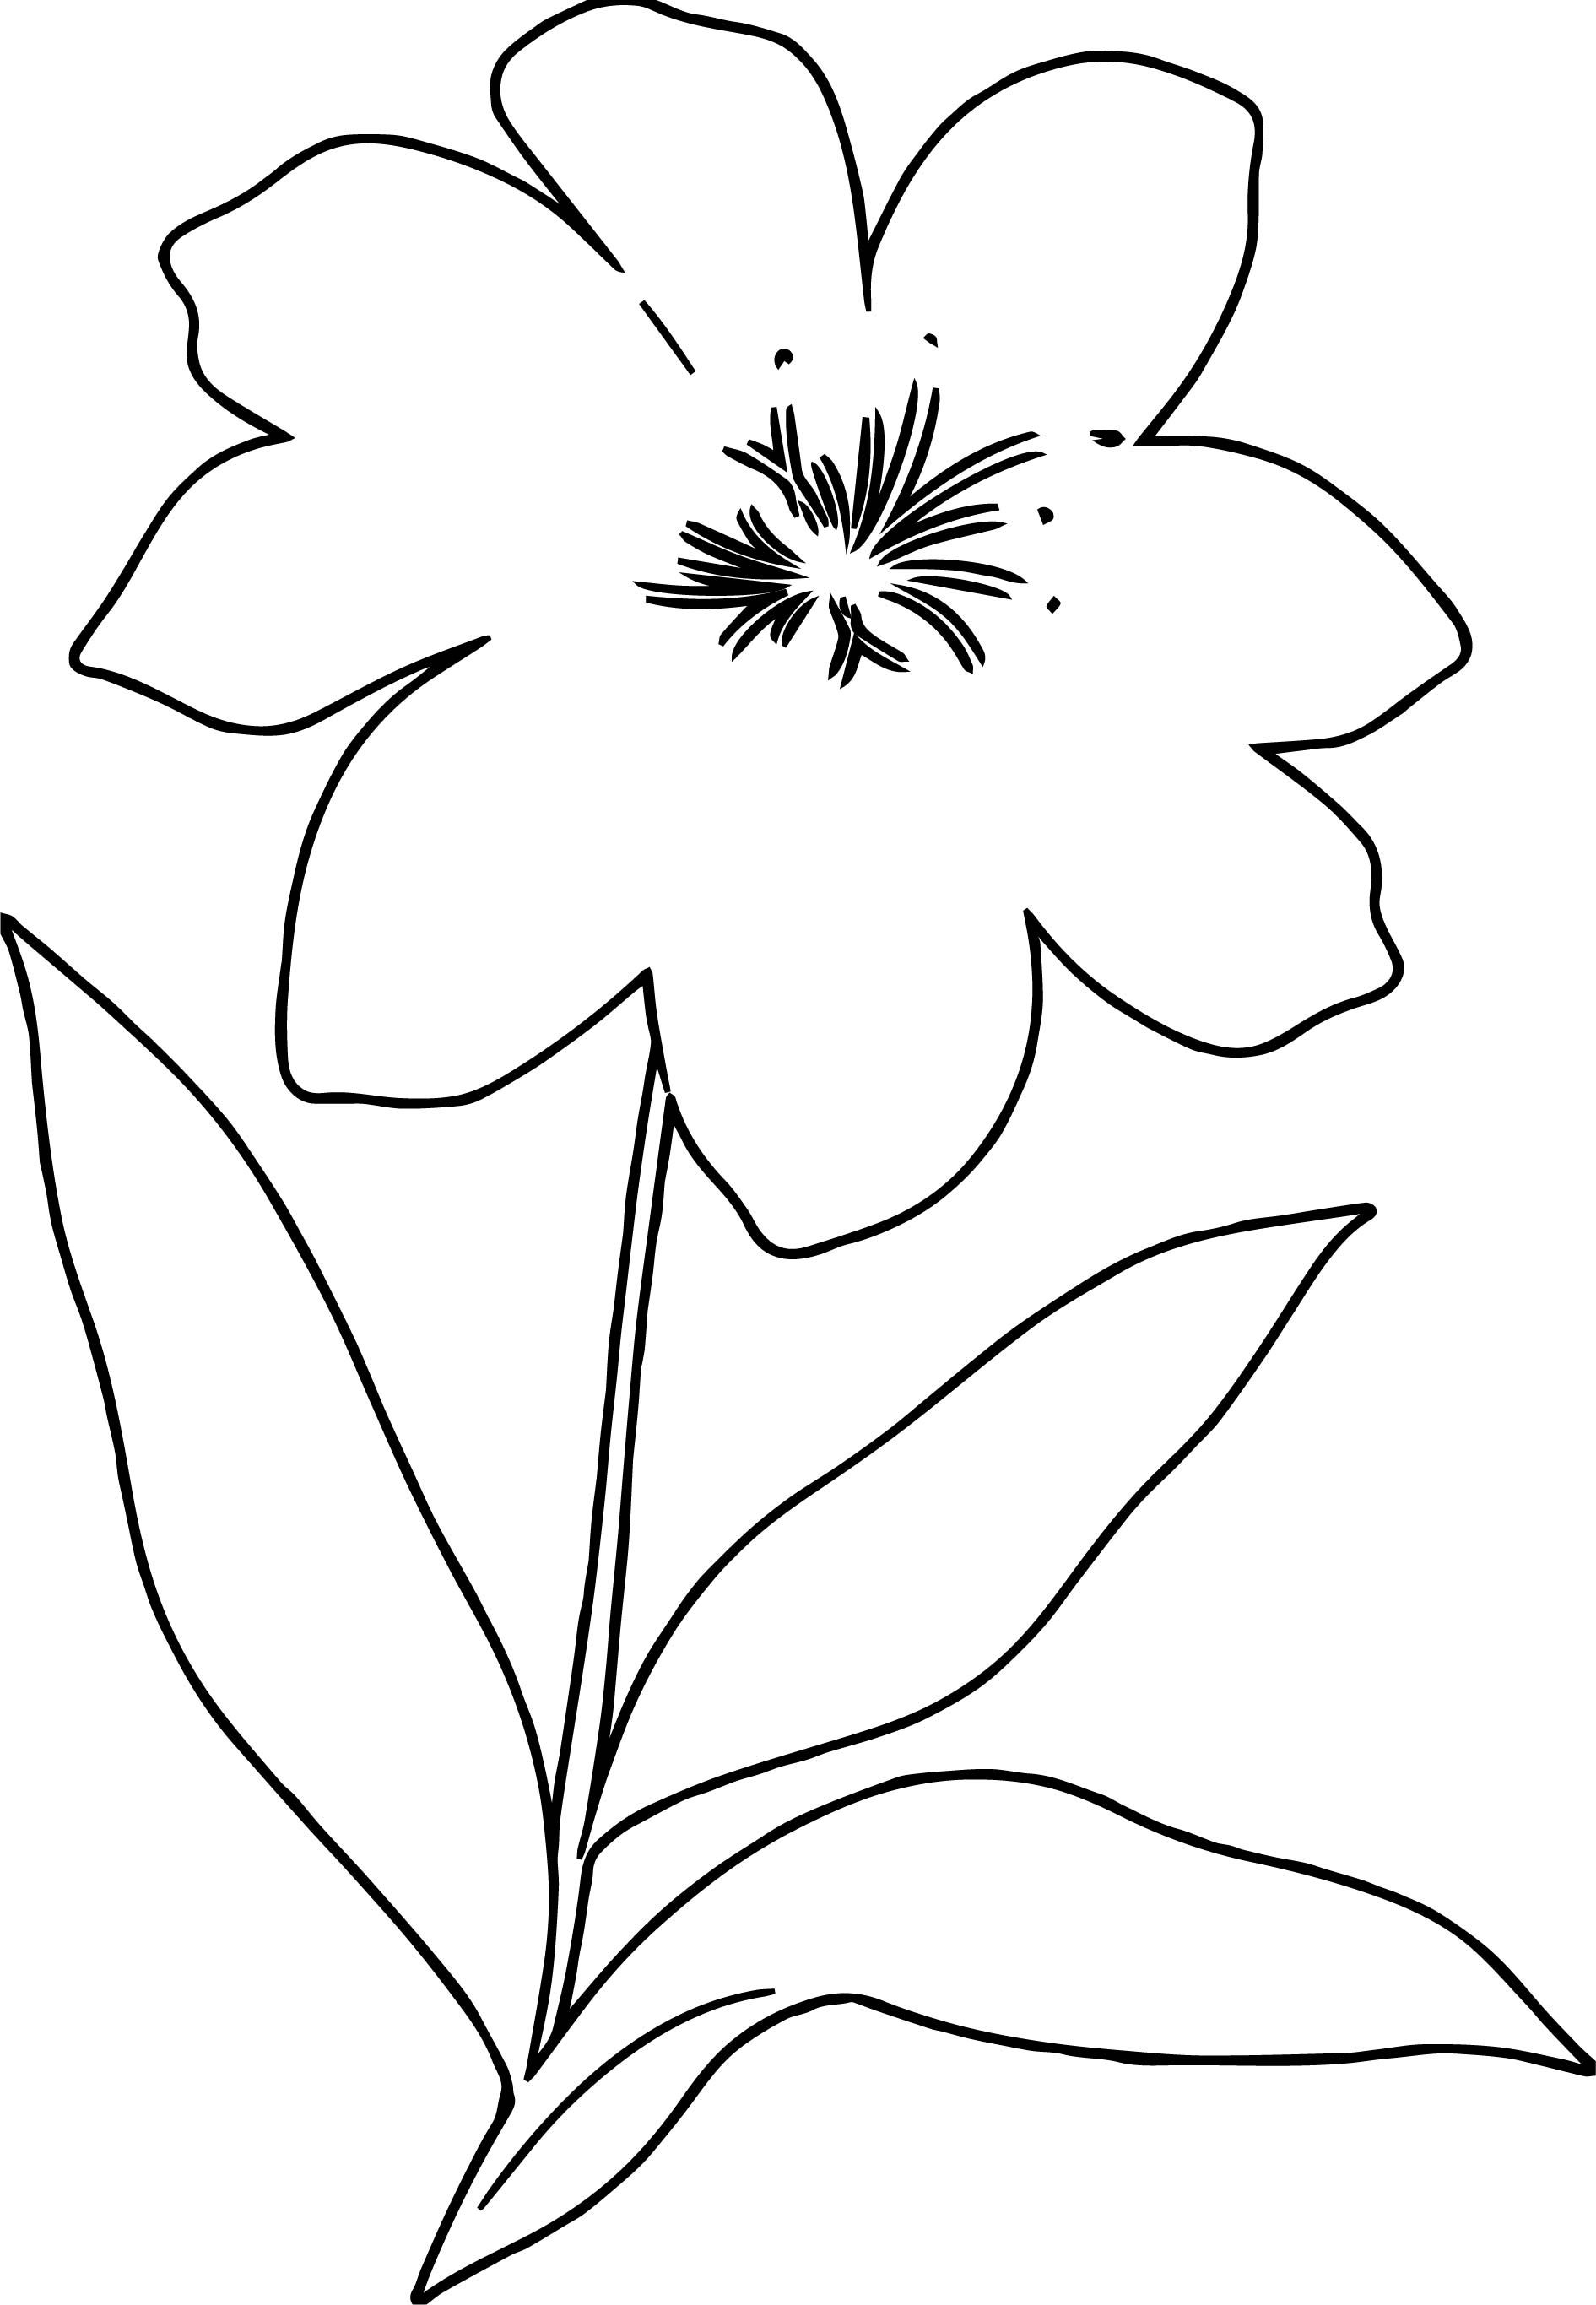 Awesome One Flower Coloring Page Flower Coloring Pages Tree Coloring Page Bee Coloring Pages [ 2731 x 1891 Pixel ]